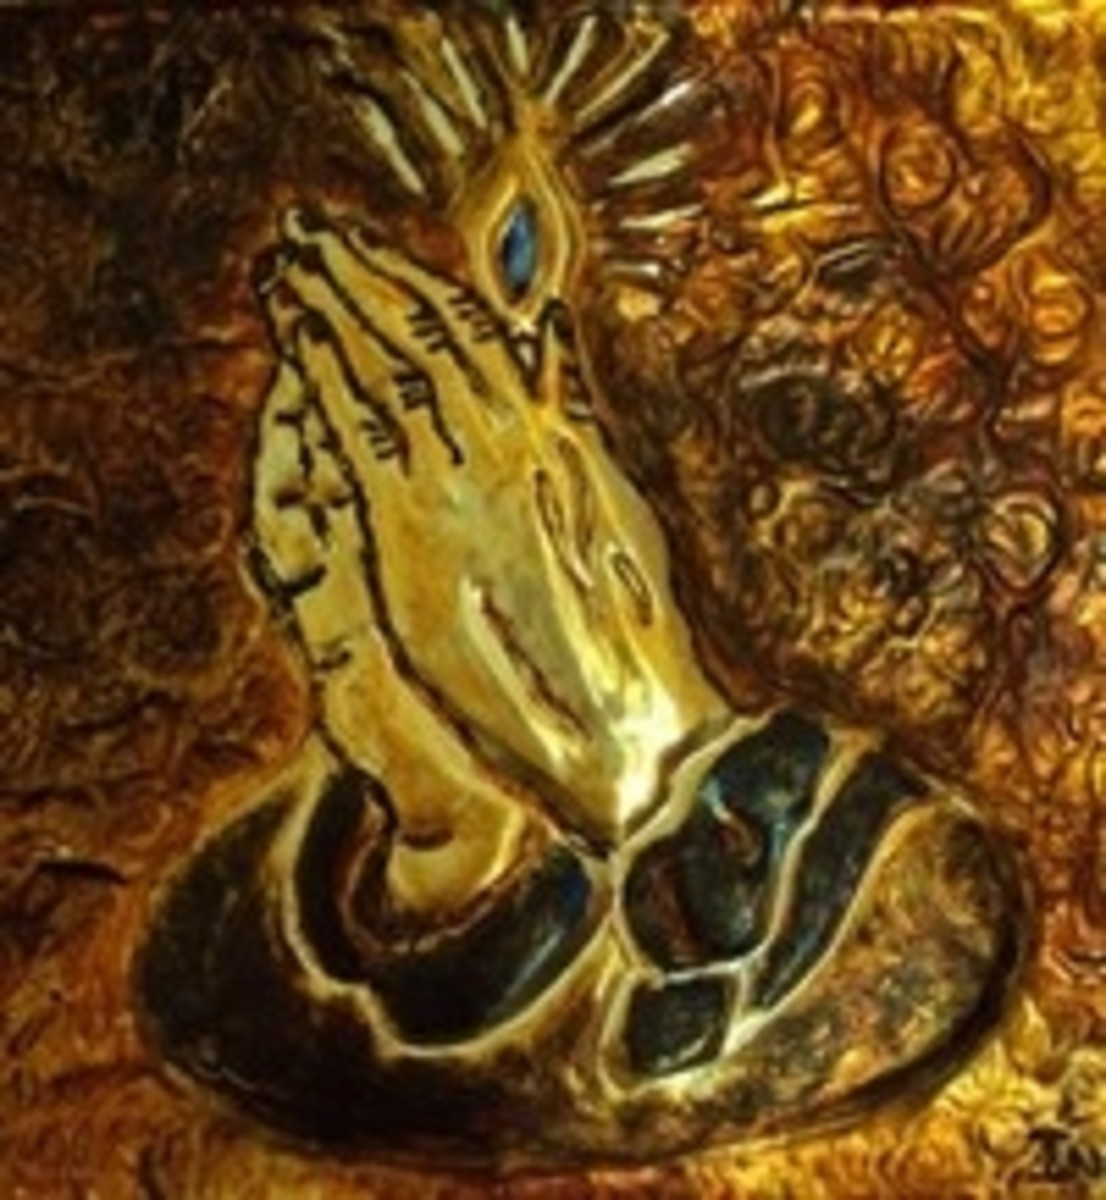 Praying Hands Metal Art by Injete Chesoni